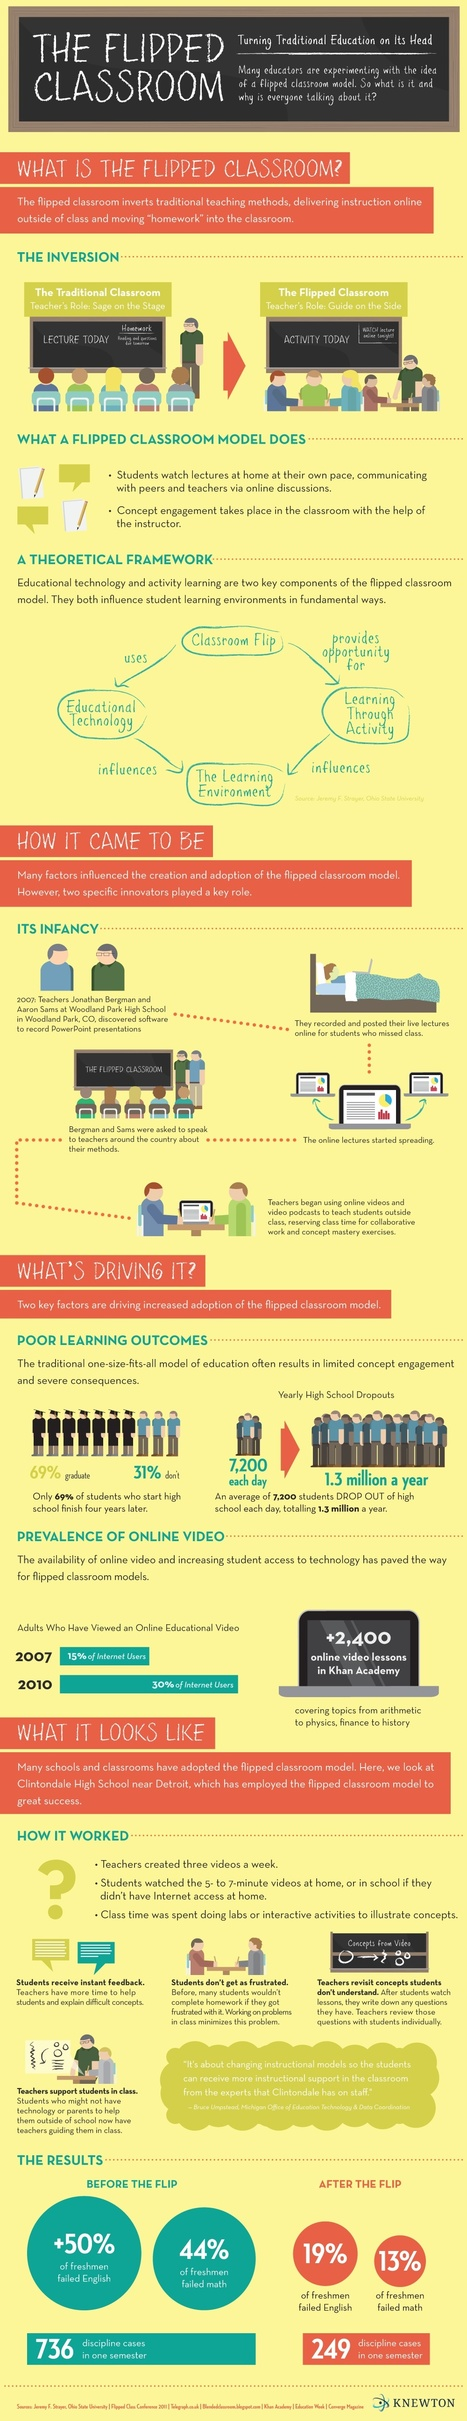 The Flipped Classroom: Turning the Traditional Classroom on its Head via @potachov | Educonomy Intersection | Scoop.it